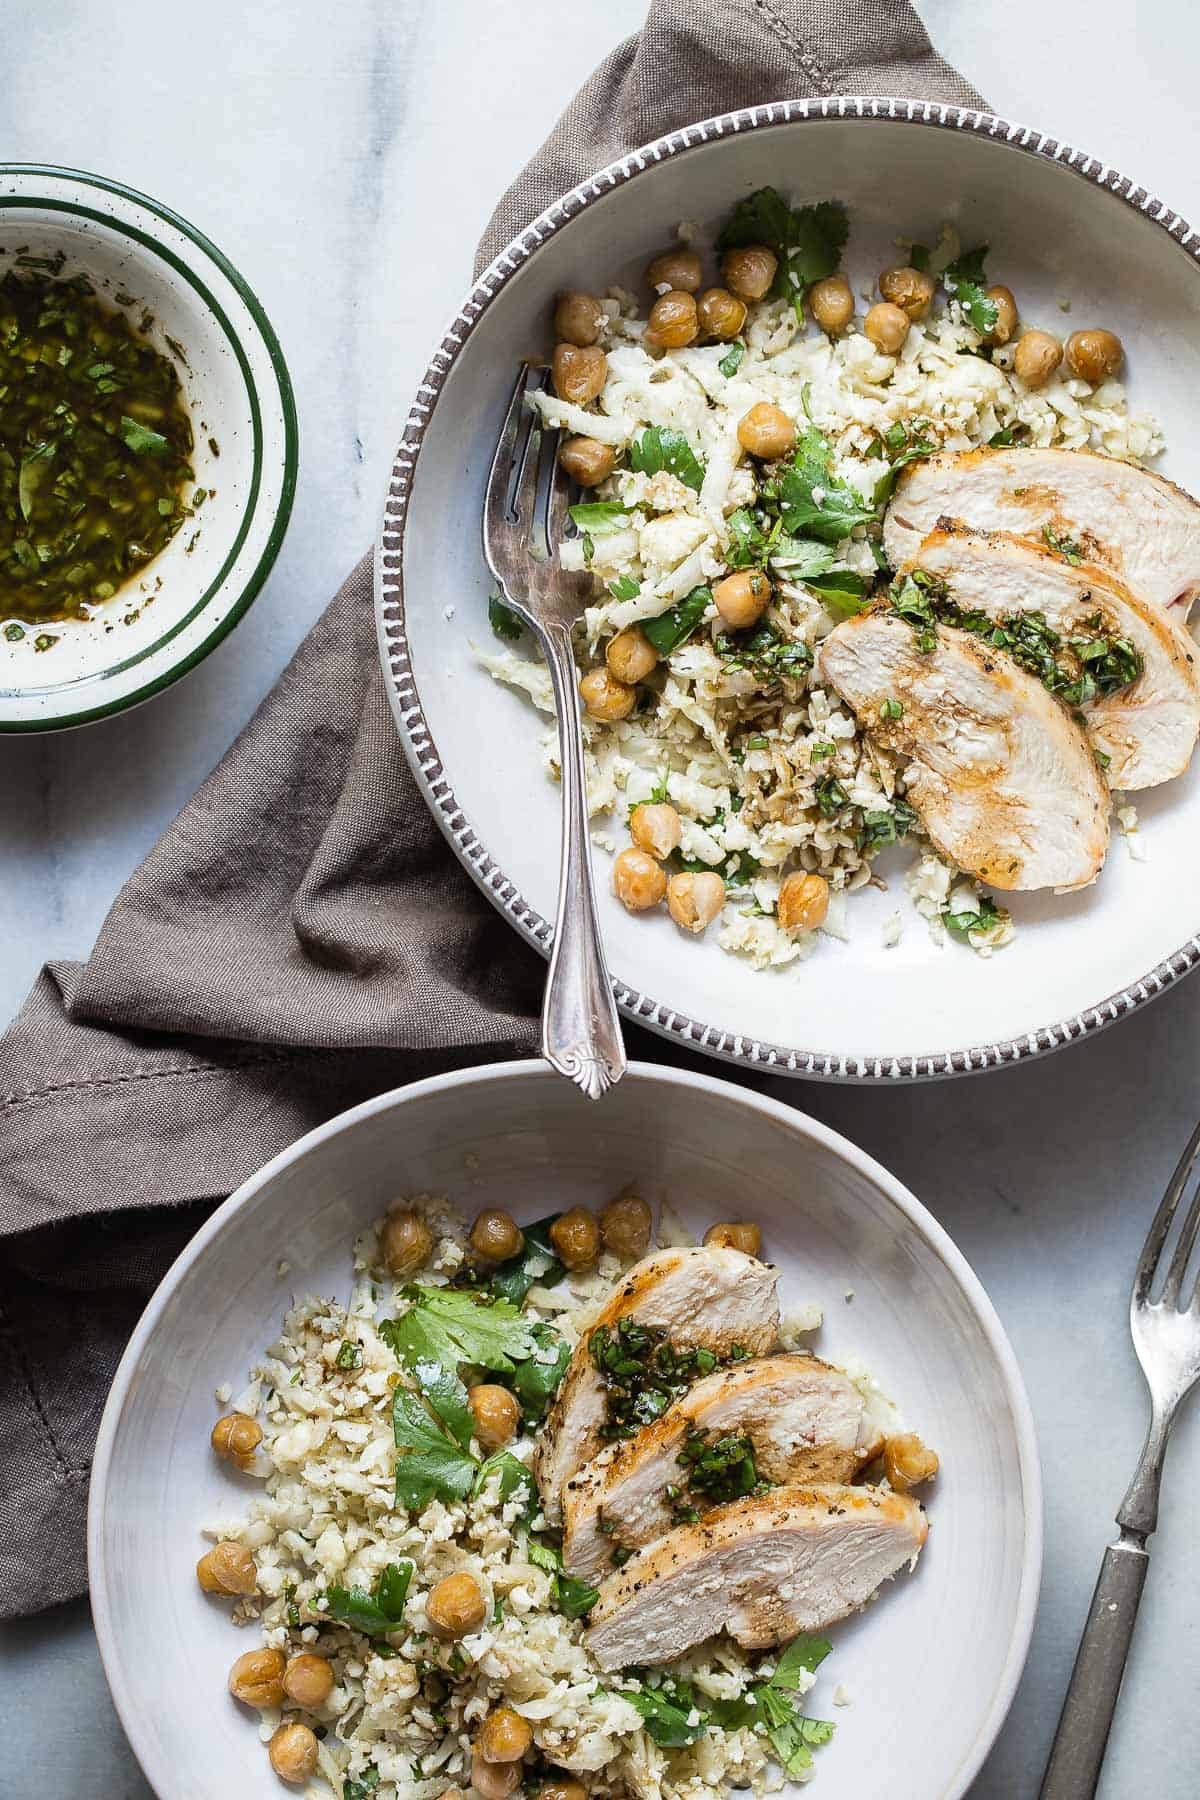 Cauliflower Rice with Grilled Chicken and Garbanzo Beans